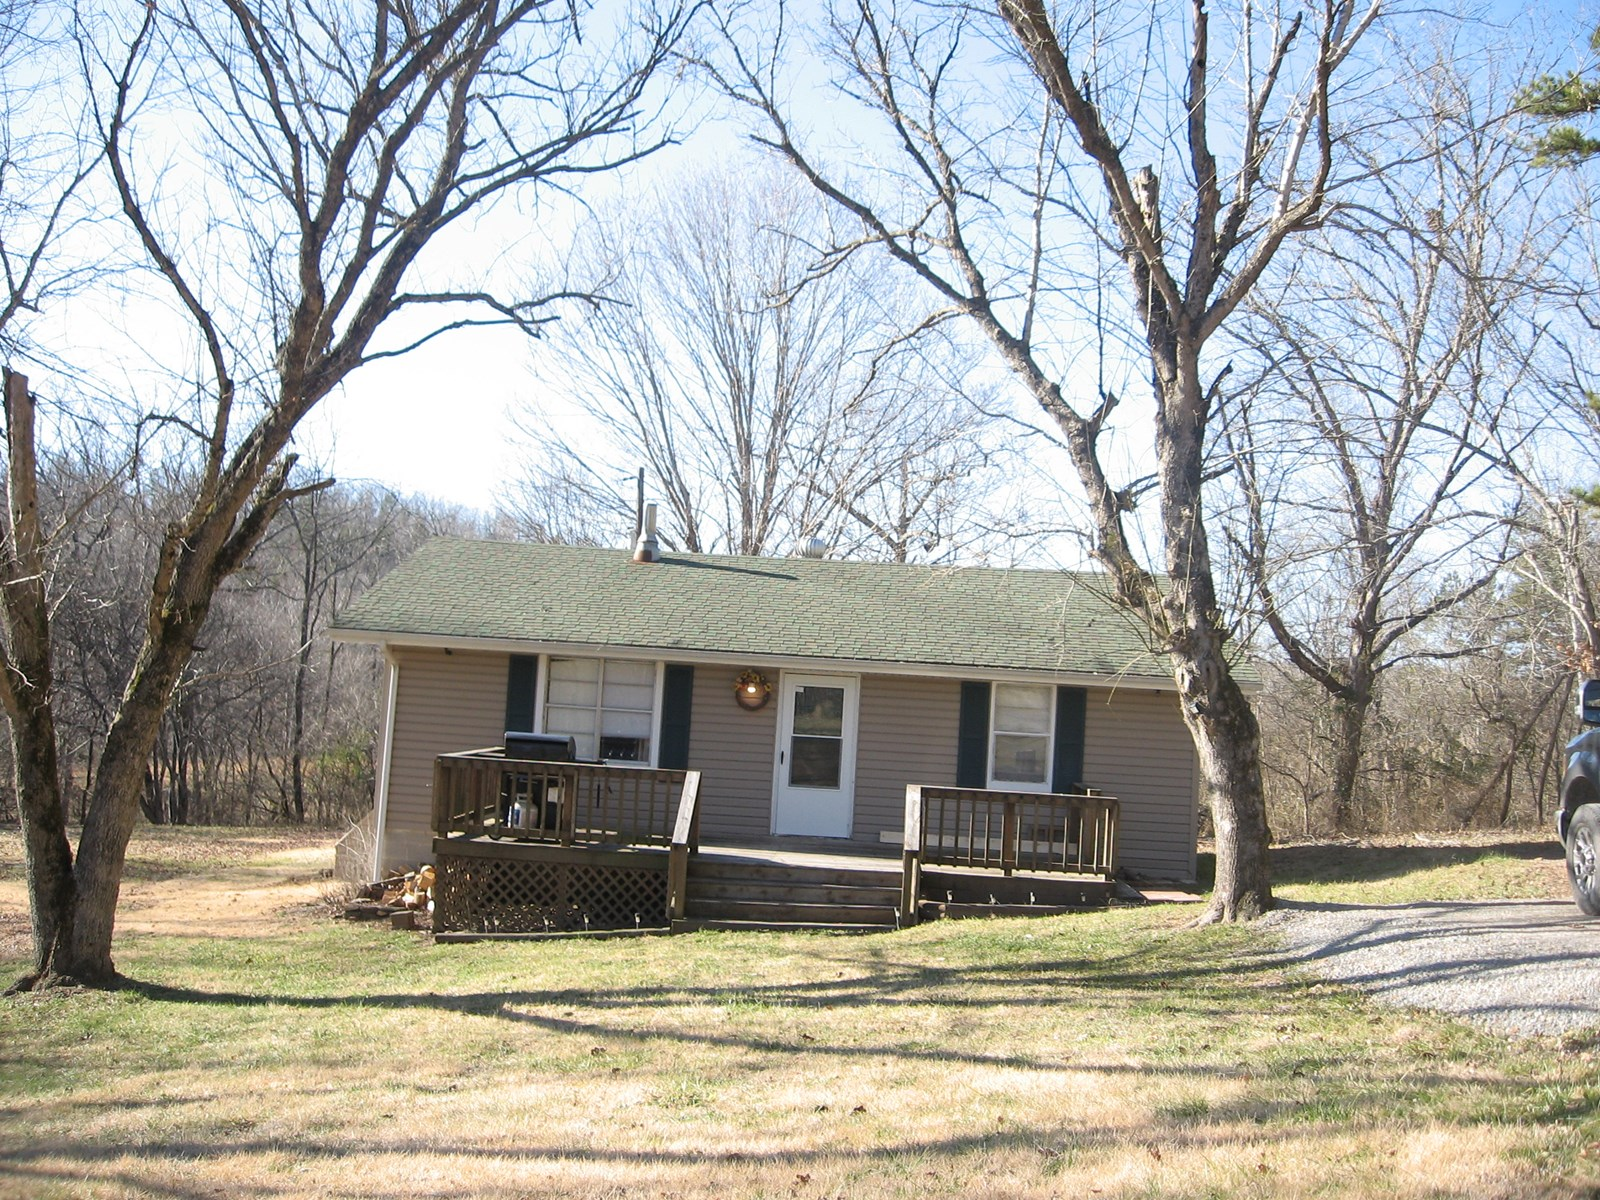 2-BR, 1-BA HOME ON 3.8 ACRES: